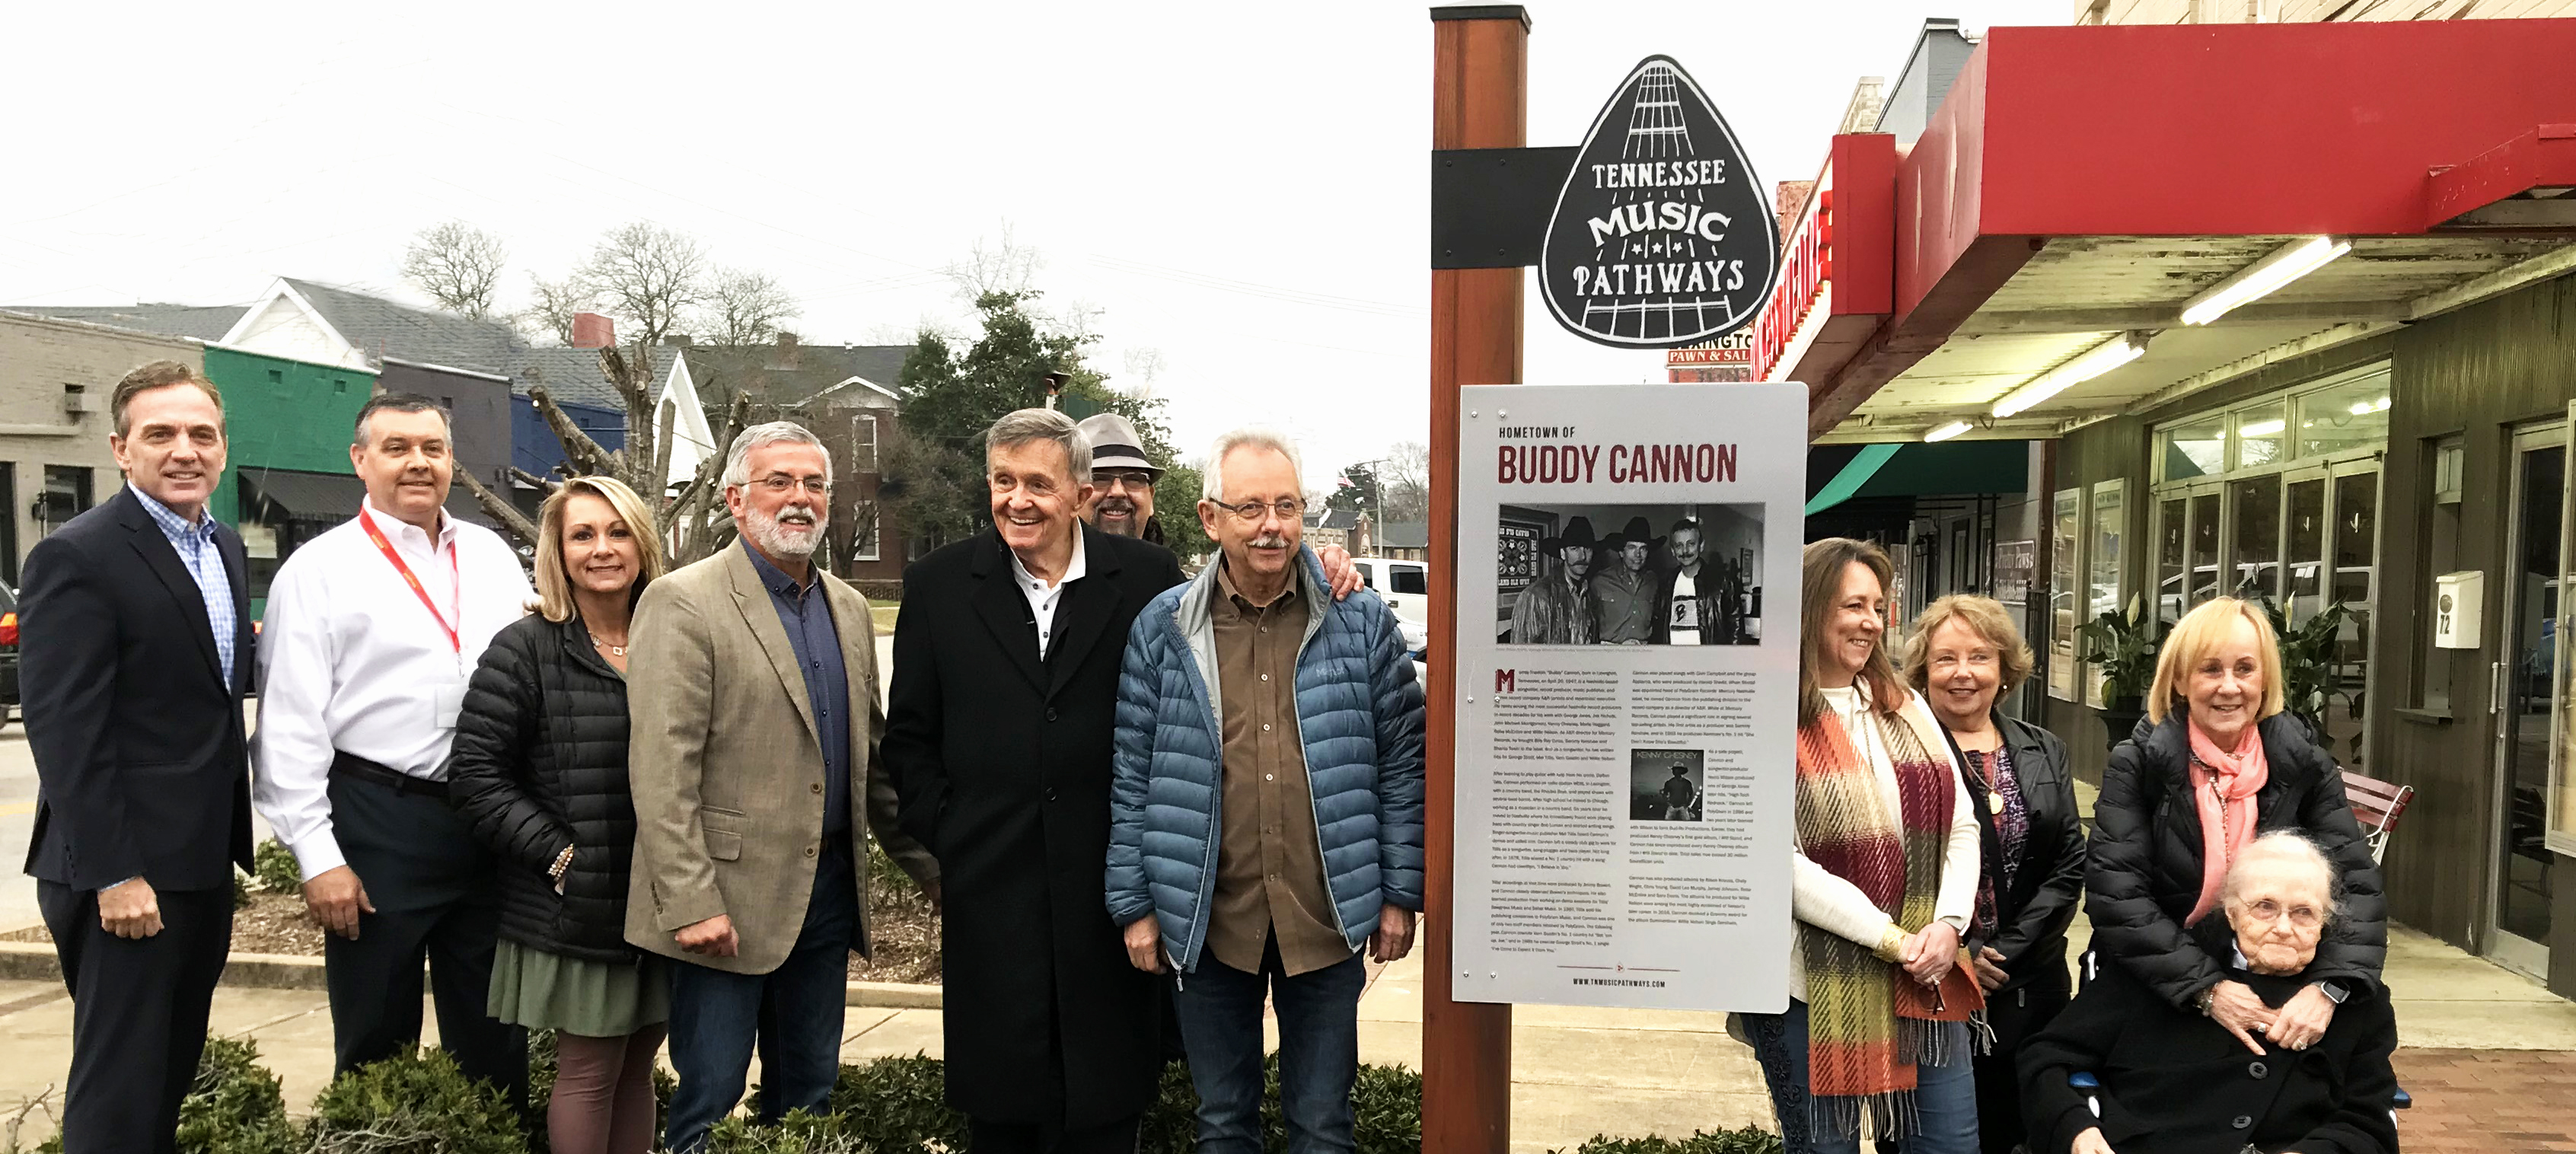 Buddy Cannon, first from left of TN Music Pathways sign, was honored in Lexington for his accomplishments as a Grammy Award-winning songwriter.